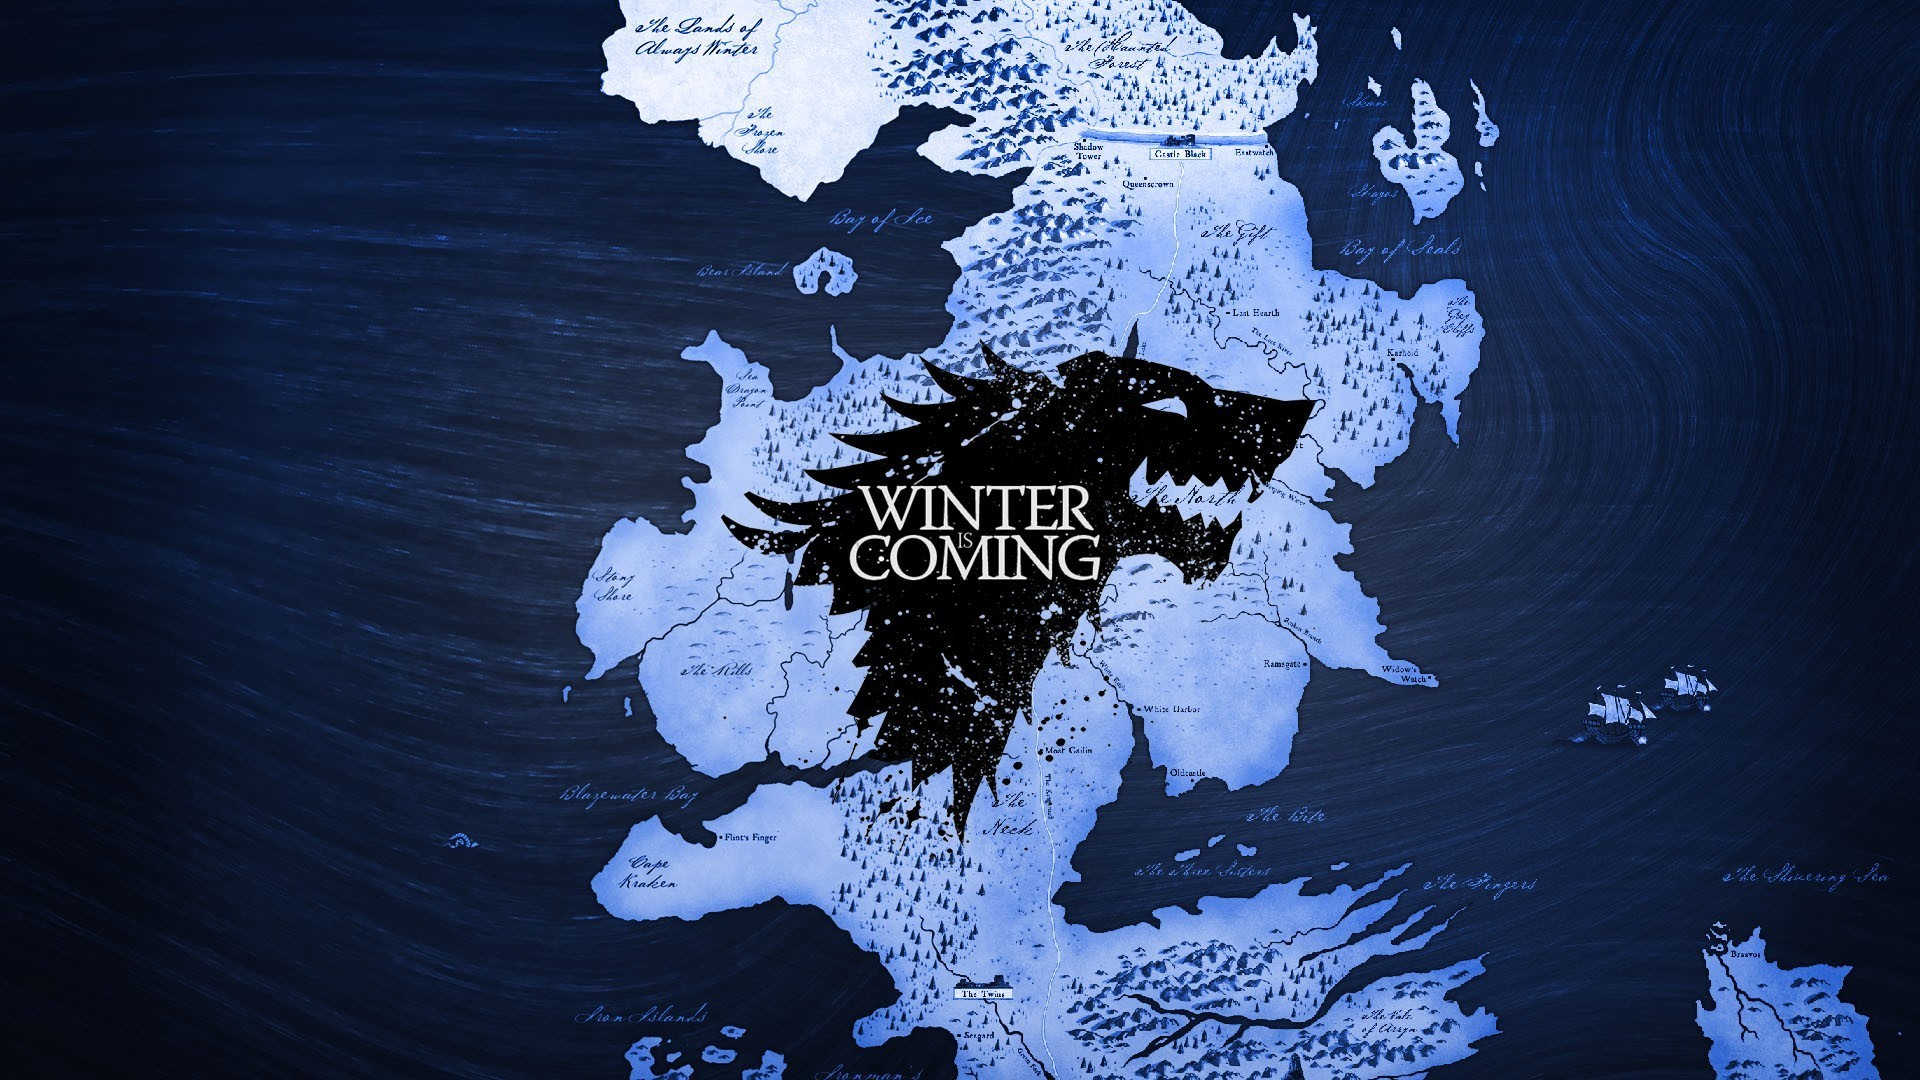 Game Of Thrones, Map, Westeros, Winterfell, A Song Of Ice And Fire, House  Stark, Winter Is Coming, Wolf Wallpapers HD / Desktop and Mobile Backgrounds